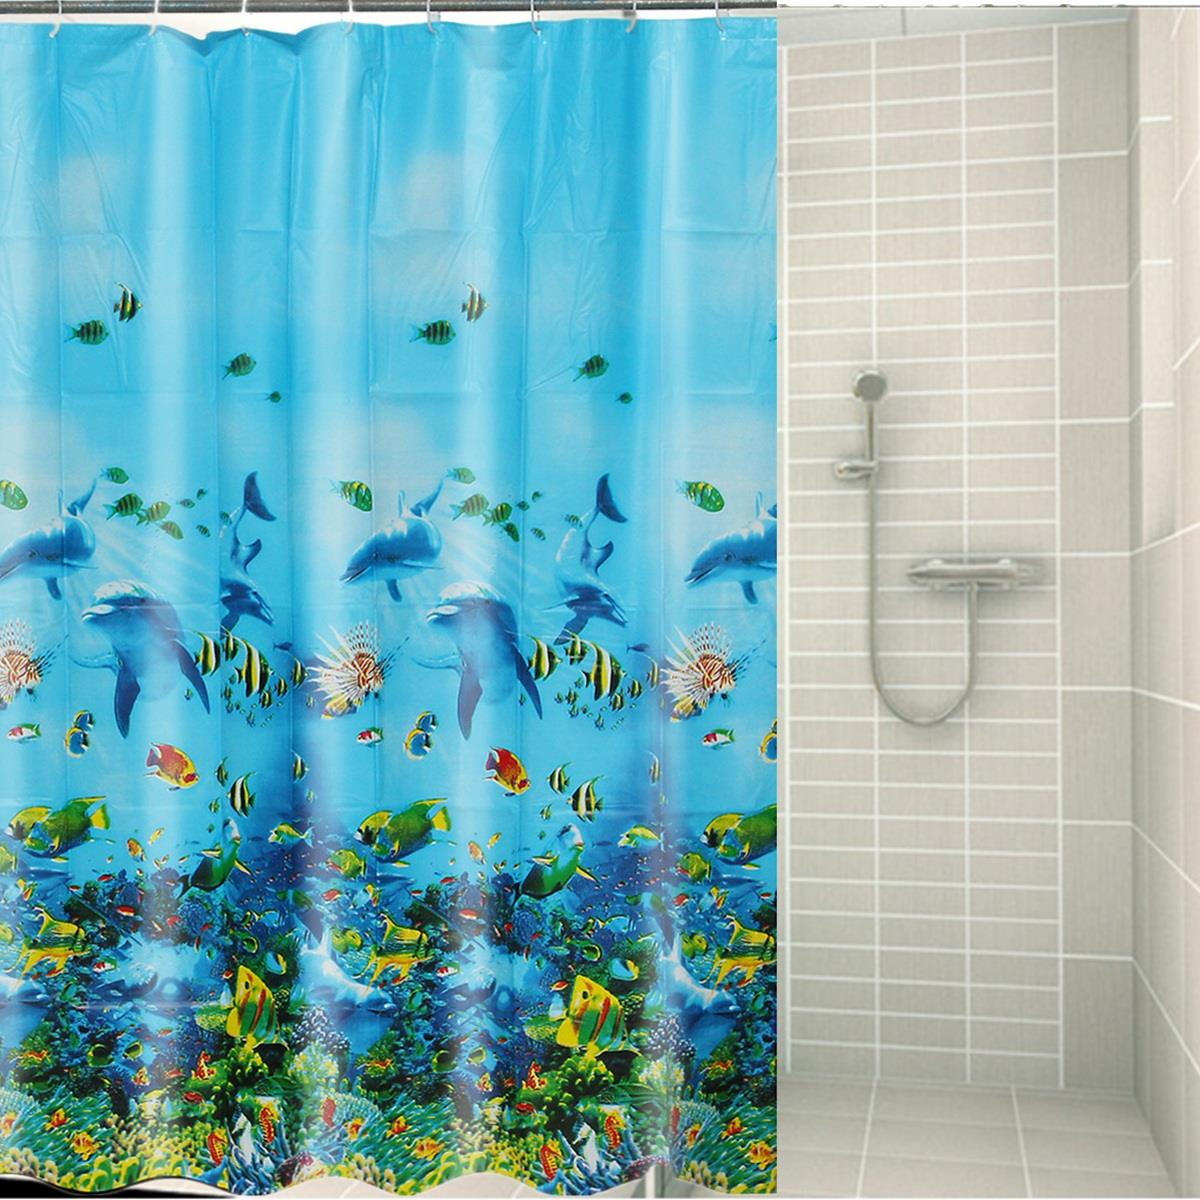 Blue EVA Ocean World Shower Curtain 180x180cm Waterproof Mouldproof Shower  Bath Curtain + 12 Hooks Home Bathroom Decor Supplies In Curtains From Home  ...